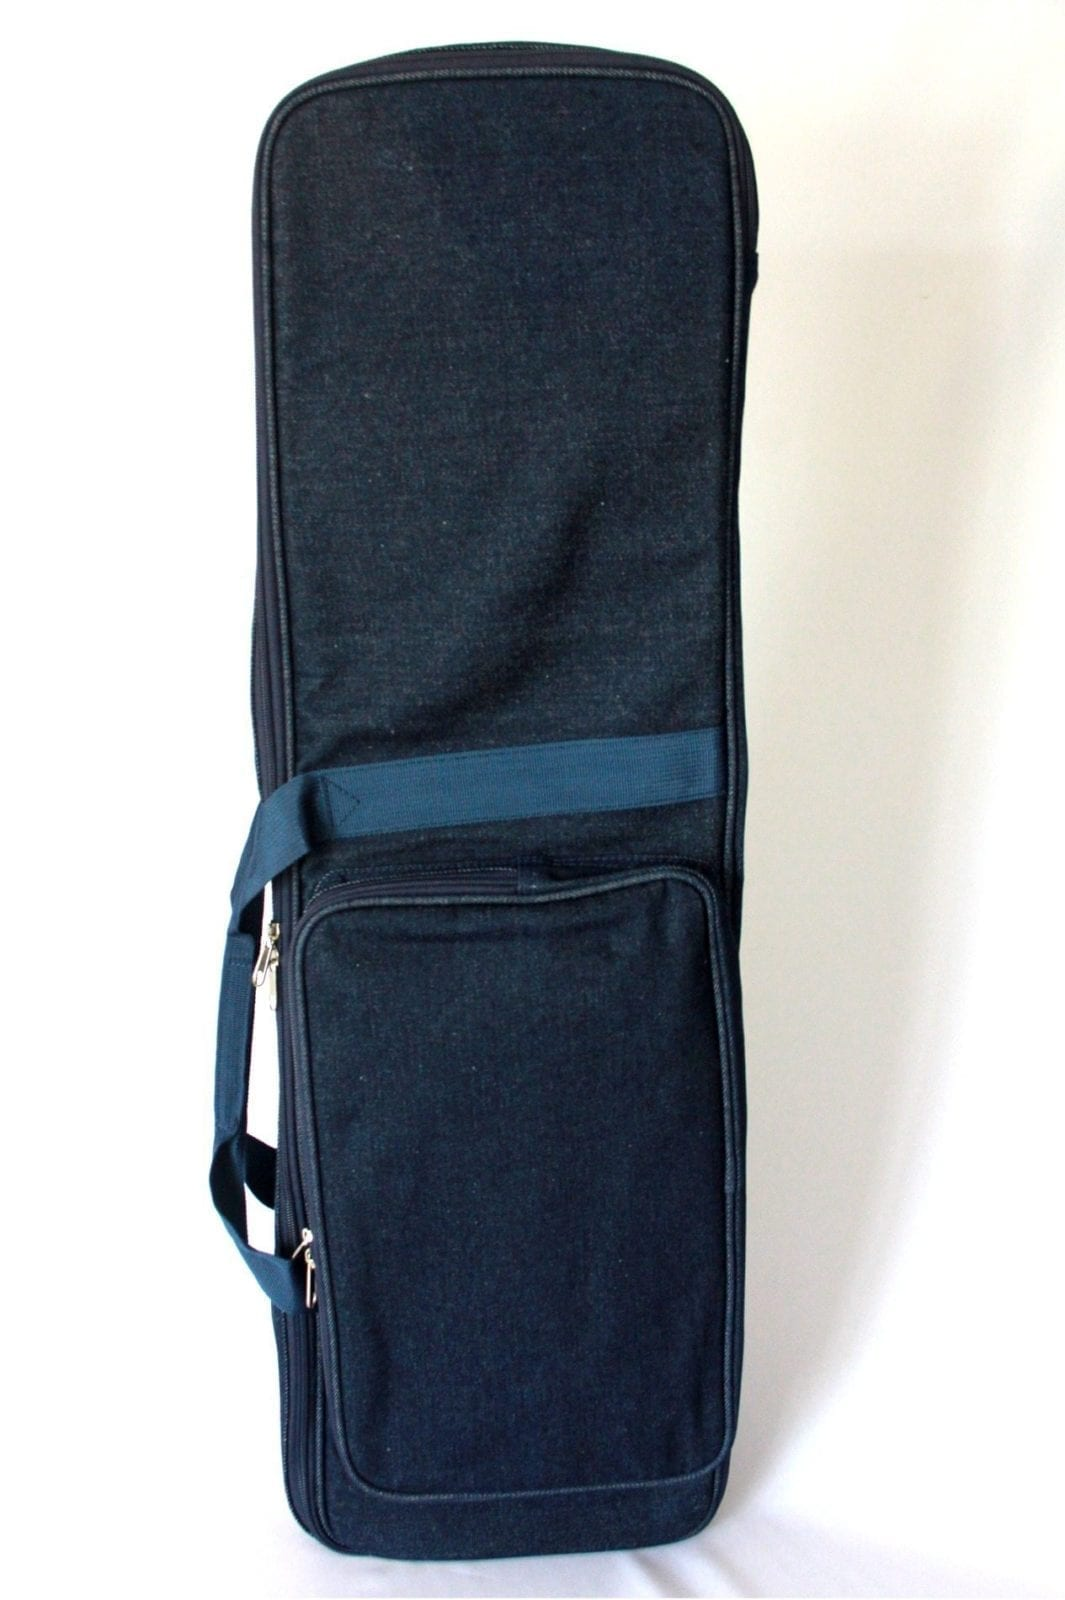 Sanshin Soft Case - Denim